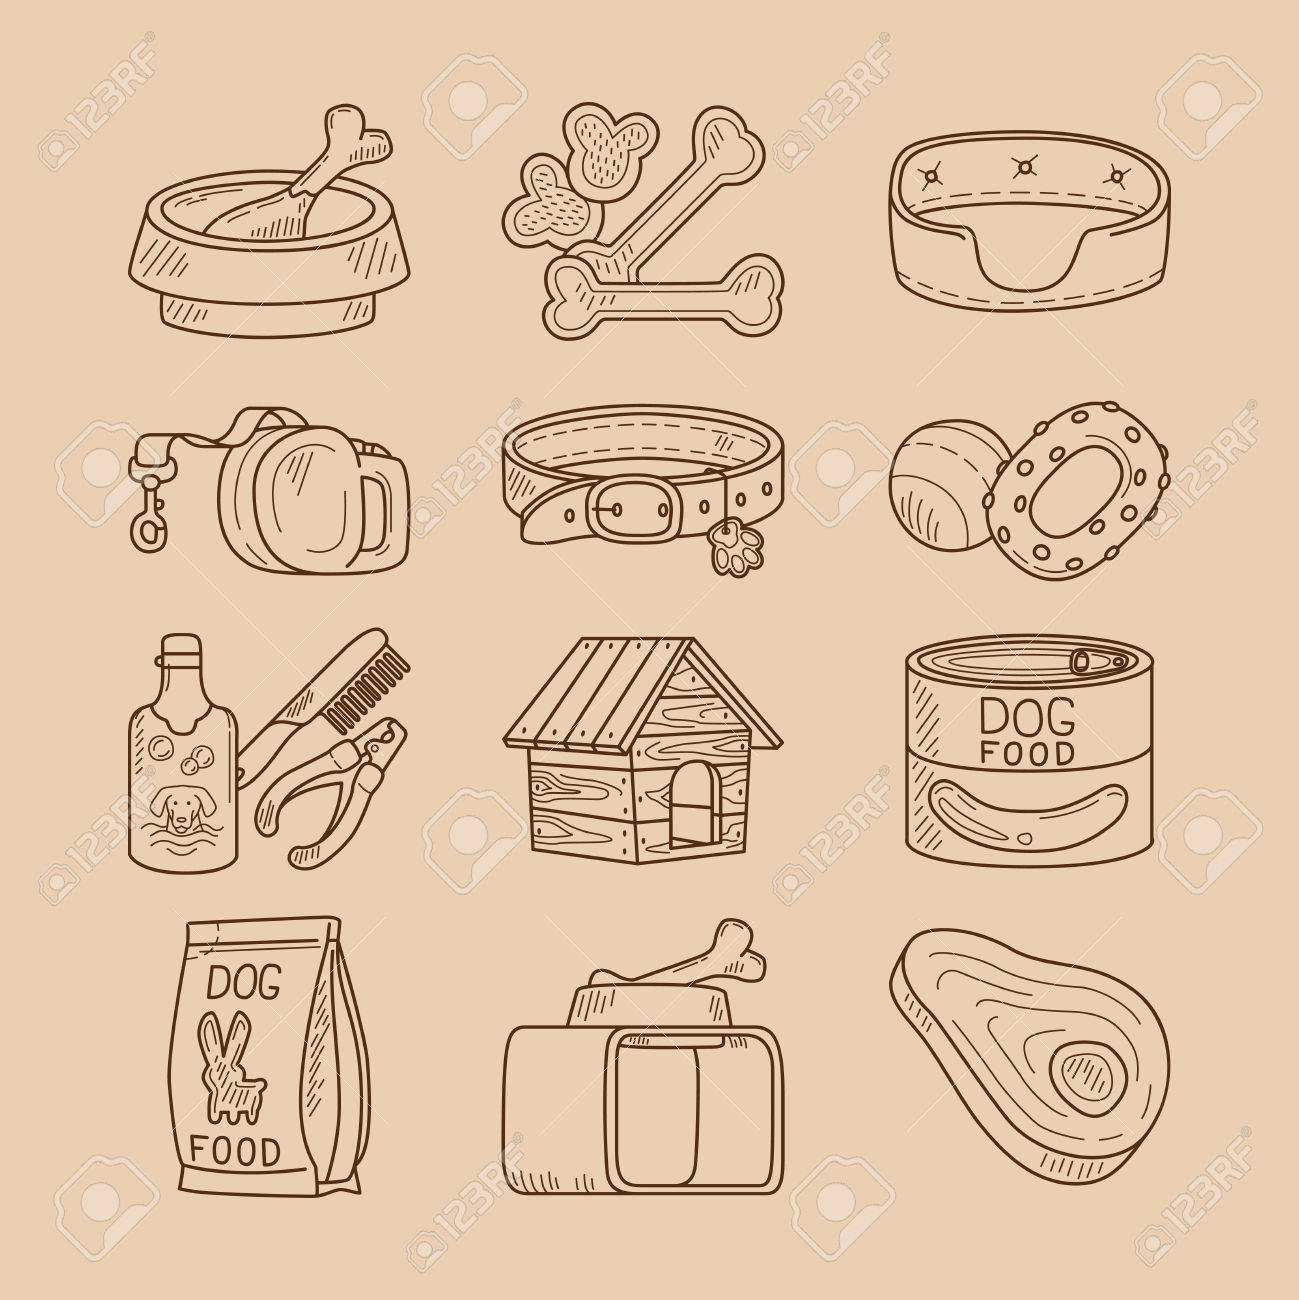 Dog Doodle Signs Hand Drawn Food And Toys For Dogs Vector Icons